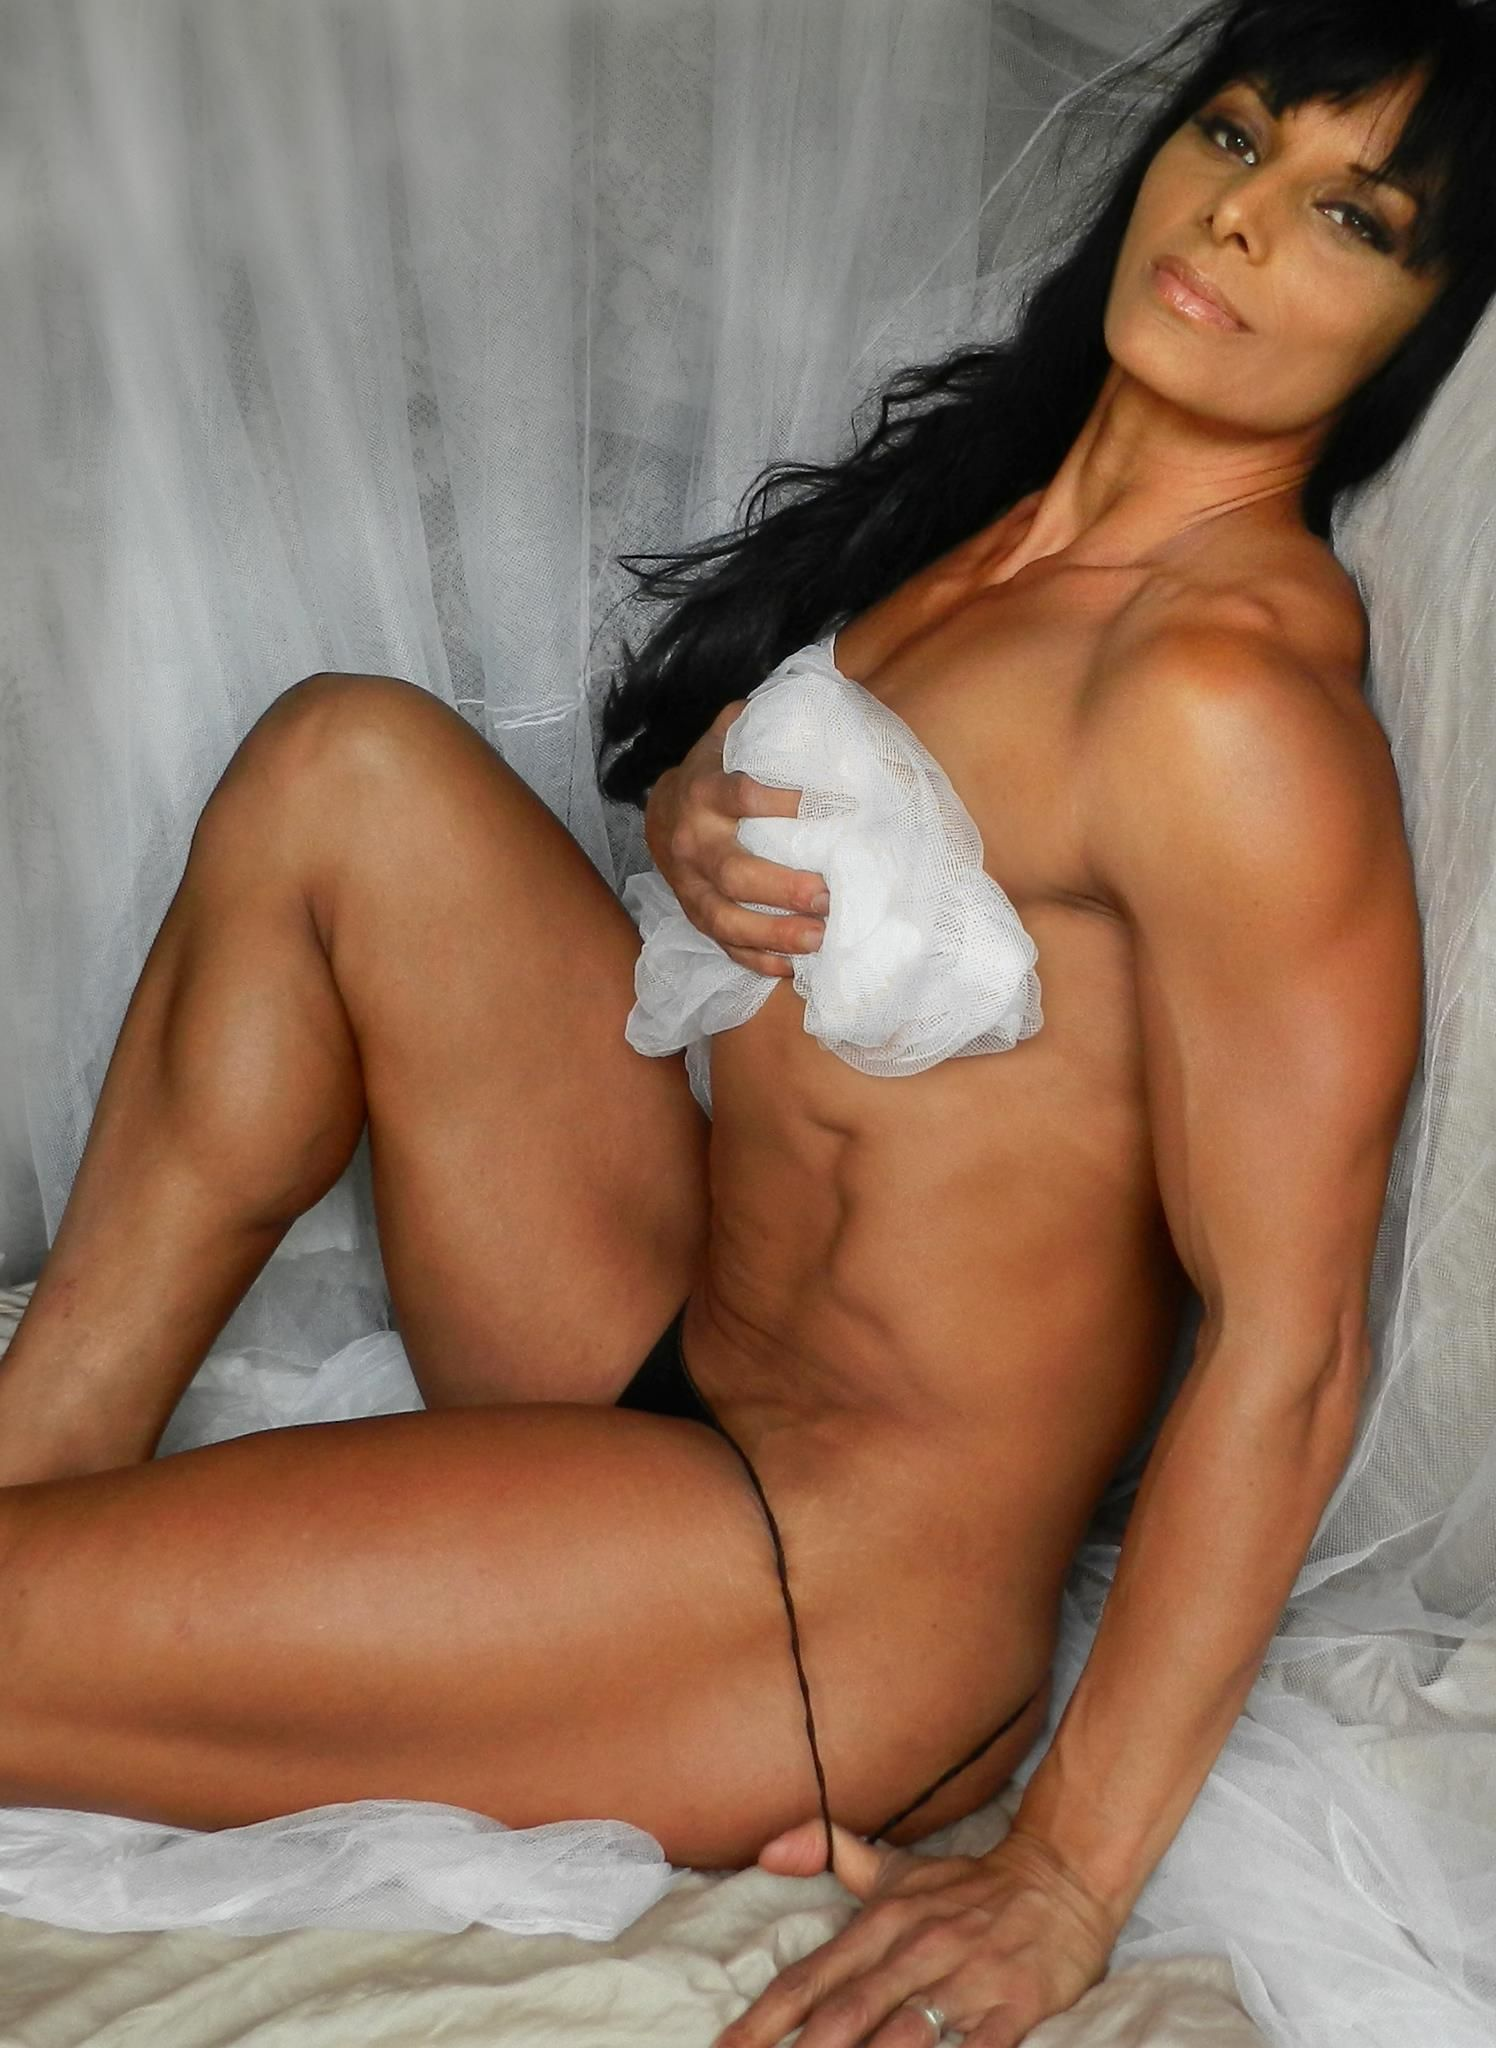 image Fit skylar rene stretching flexing and posing